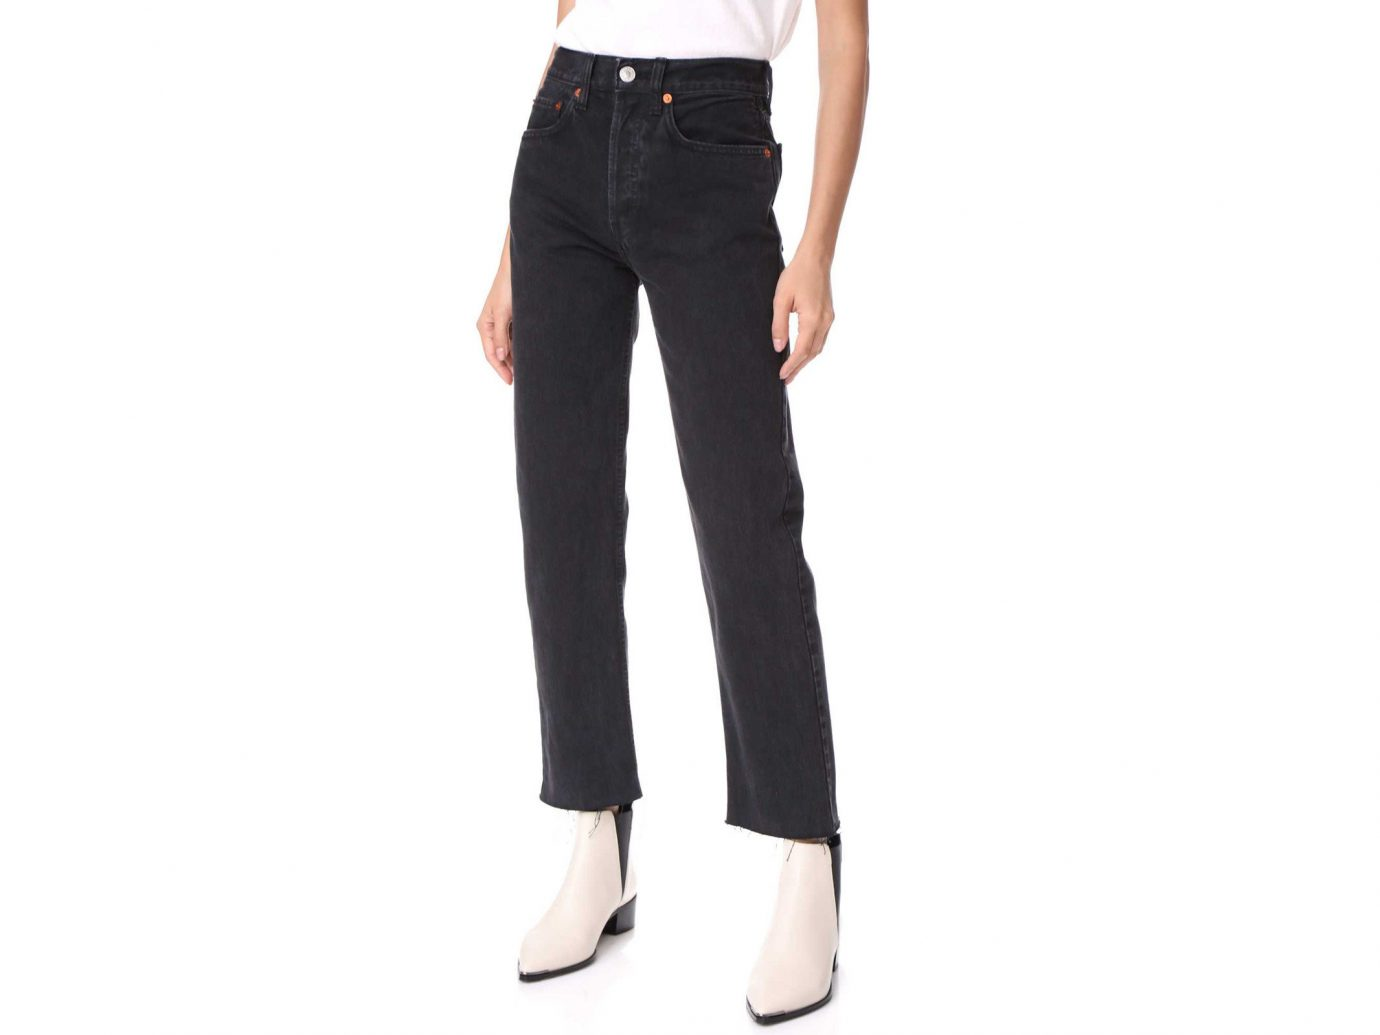 Packing Tips shopping Style + Design Travel Shop clothing trouser jeans denim standing waist trousers active pants joint pocket posing